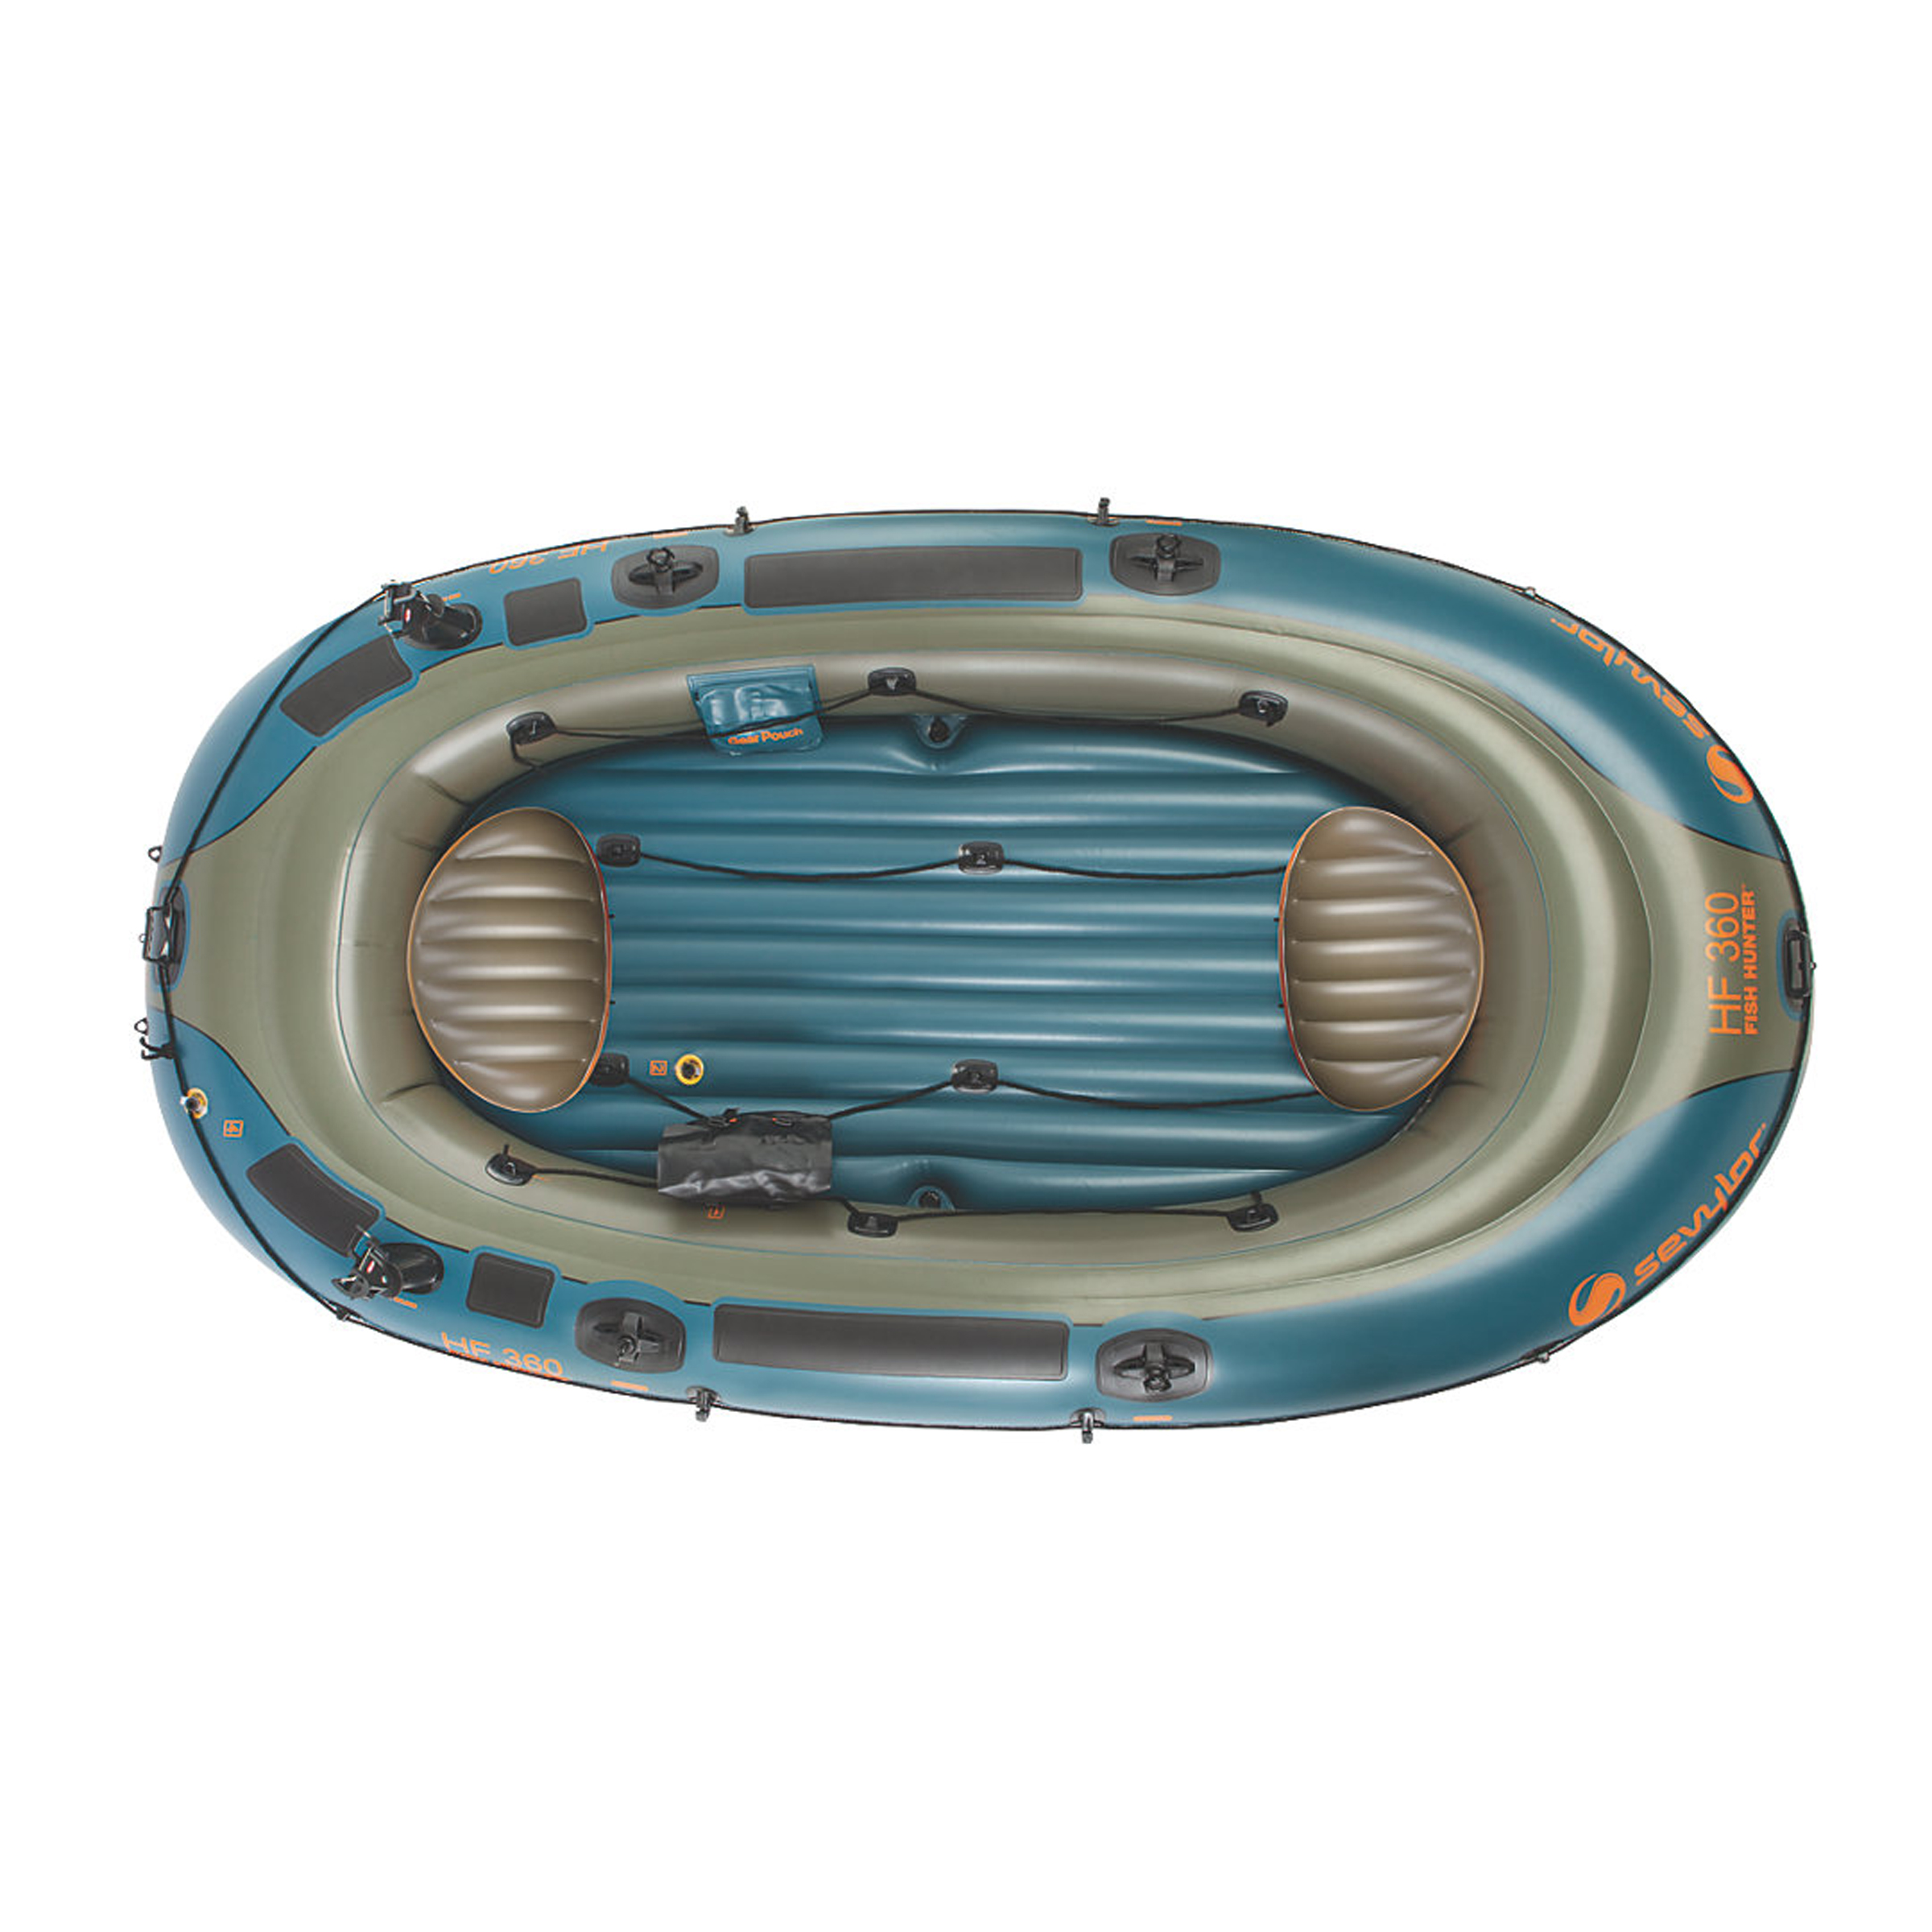 Sevylor 6-Person Fish/Hunt Inflatable Boat with Berk